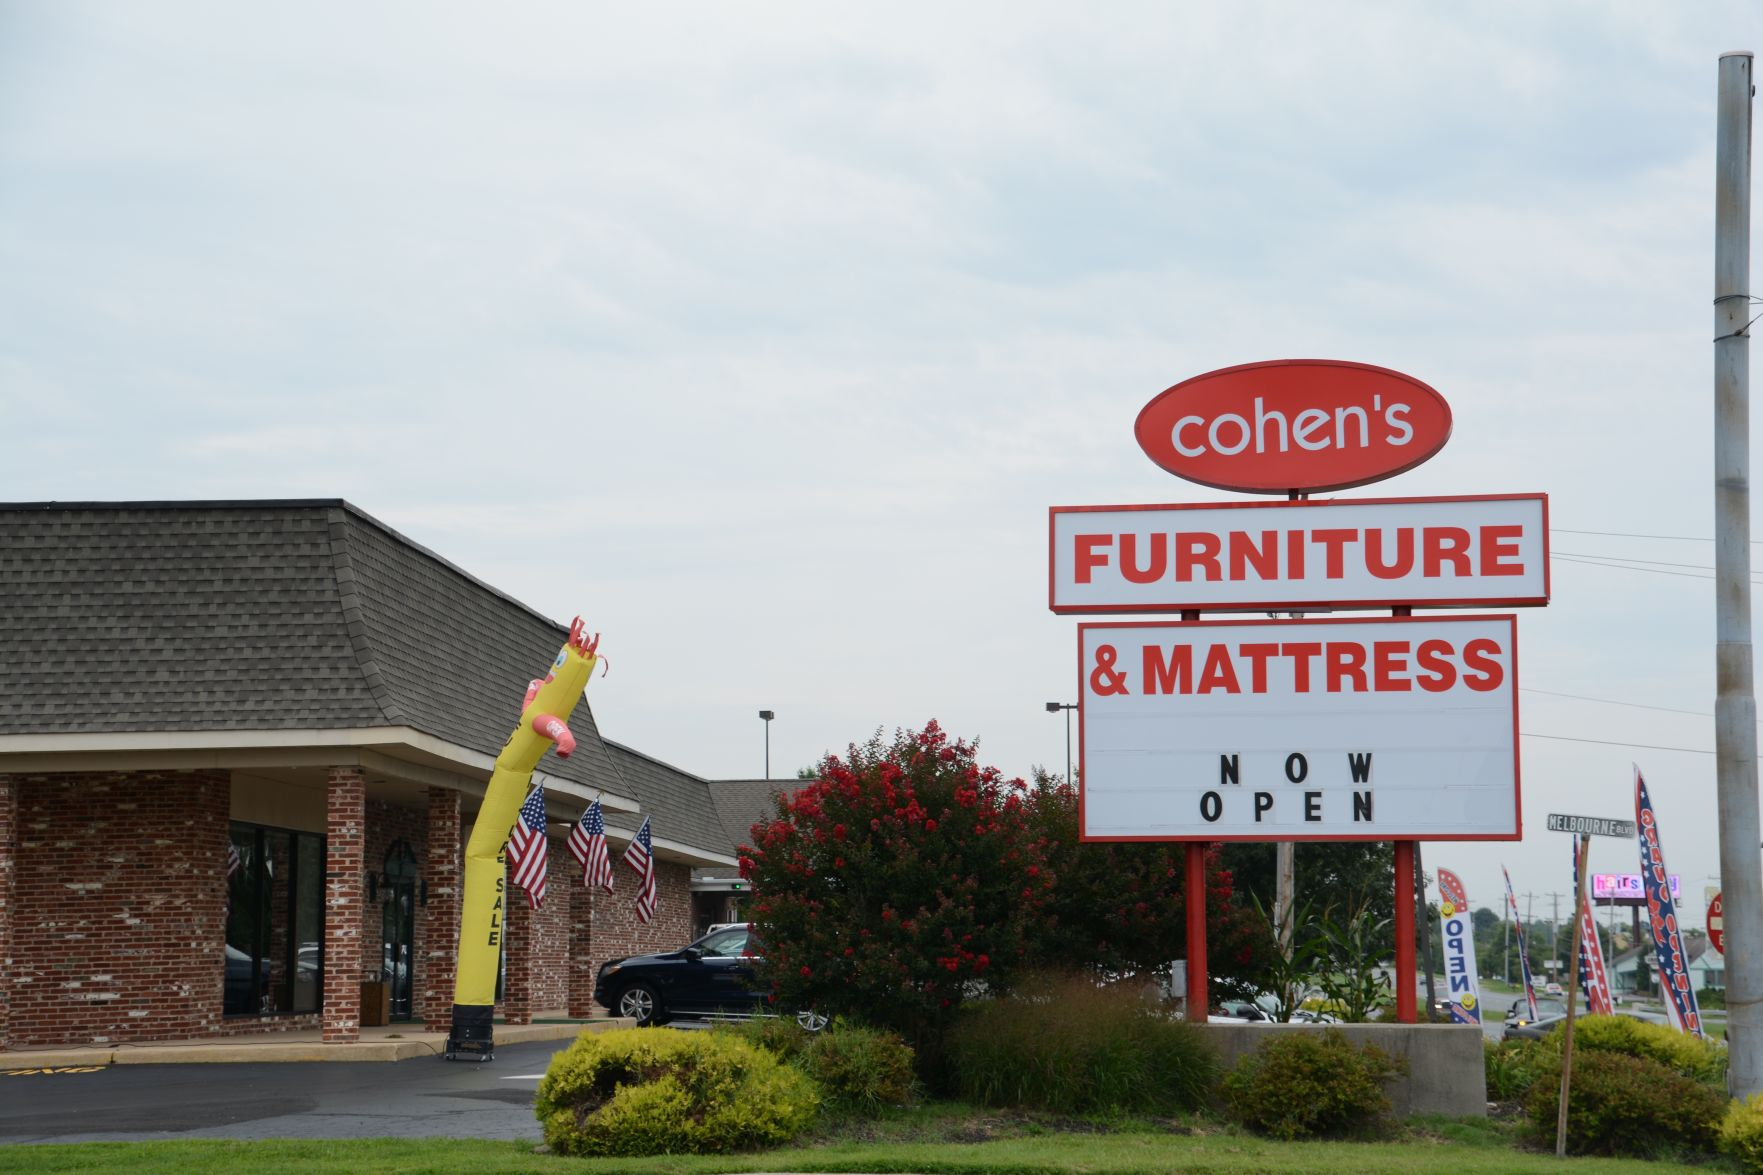 Cohenu0027s Furniture Has Opened In The Former Jodlbaueru0027s Location On U.S.  Route 40.